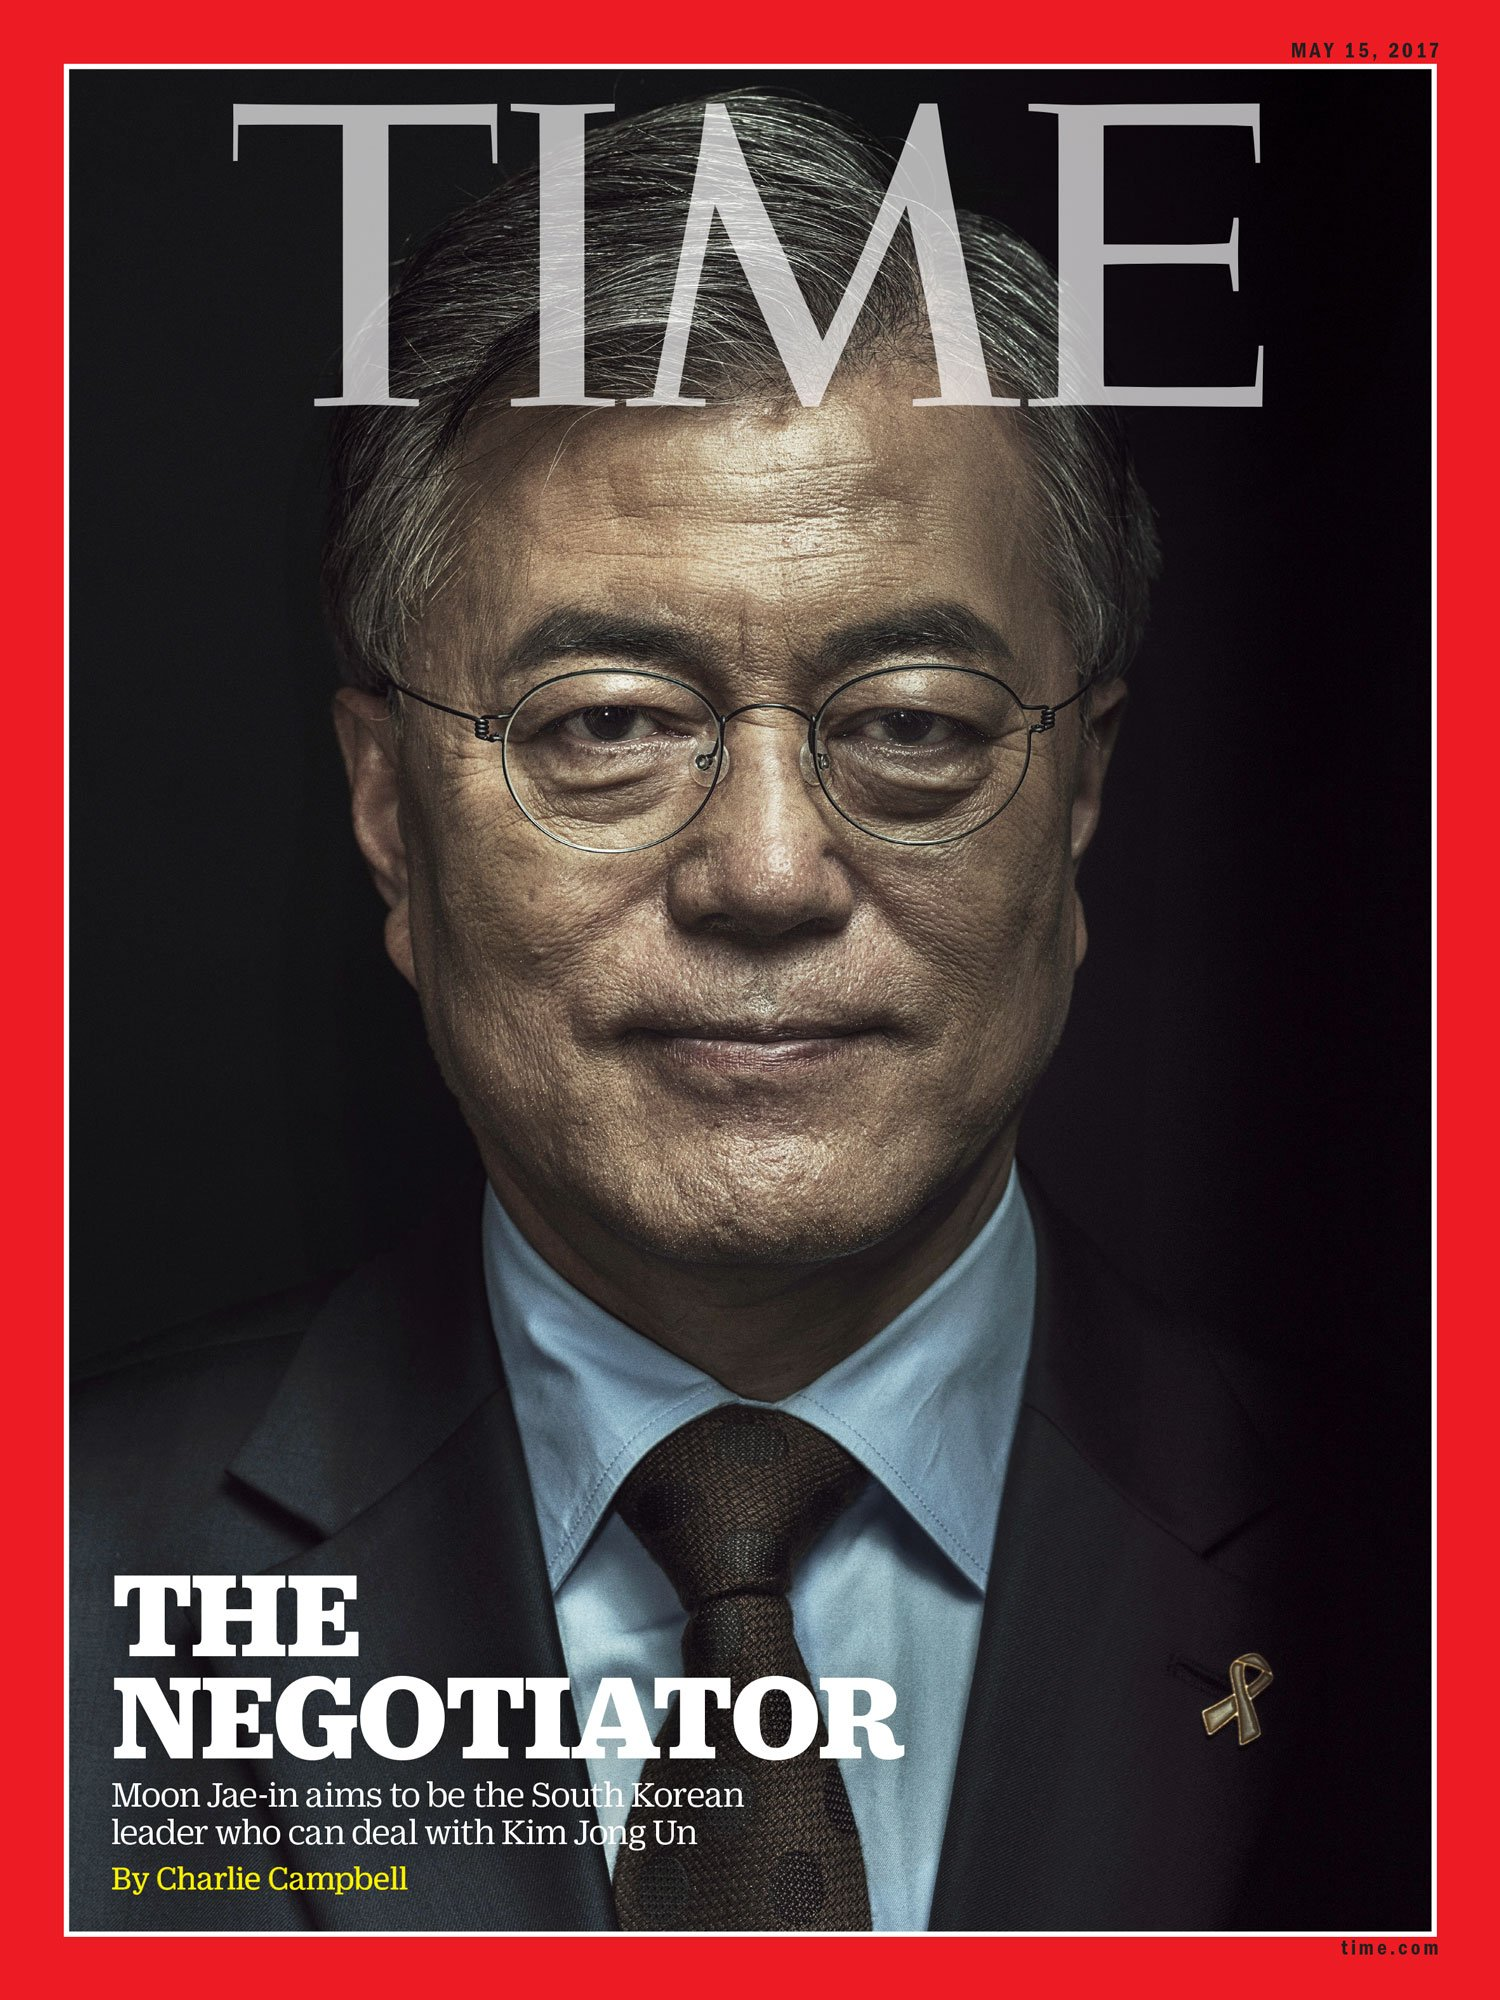 Meet Moon Jae-in, the man who wants to reason with North Korea https://t.co/OvYje2nw5S https://t.co/AzEgoU6Bt1